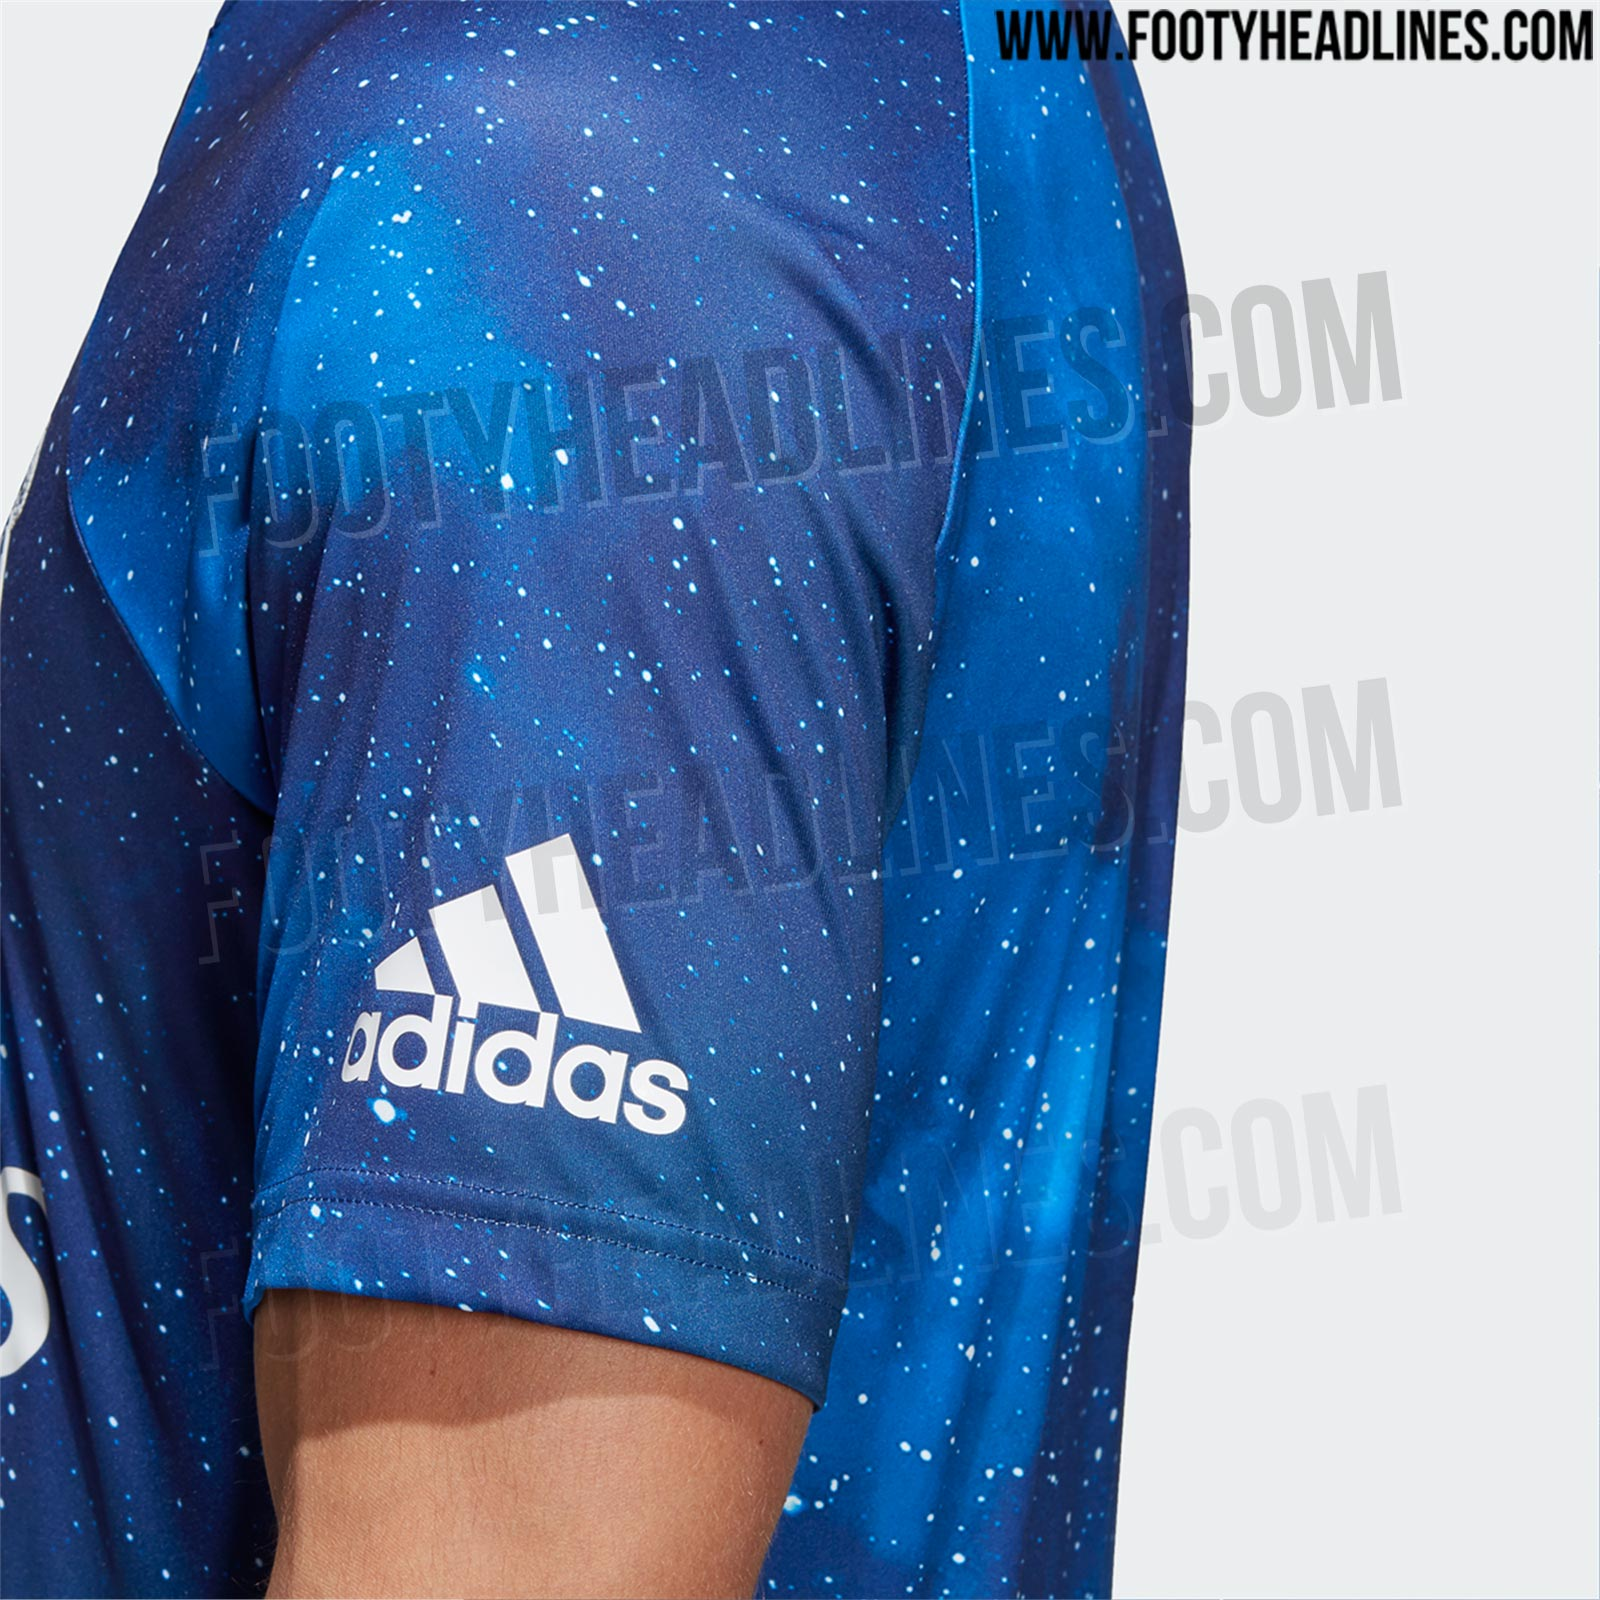 cd61a0b071d ... the Adidas EA Sports Real Madrid SE kit features an all-over space  graphic on the front to pay homage to the club s nickname